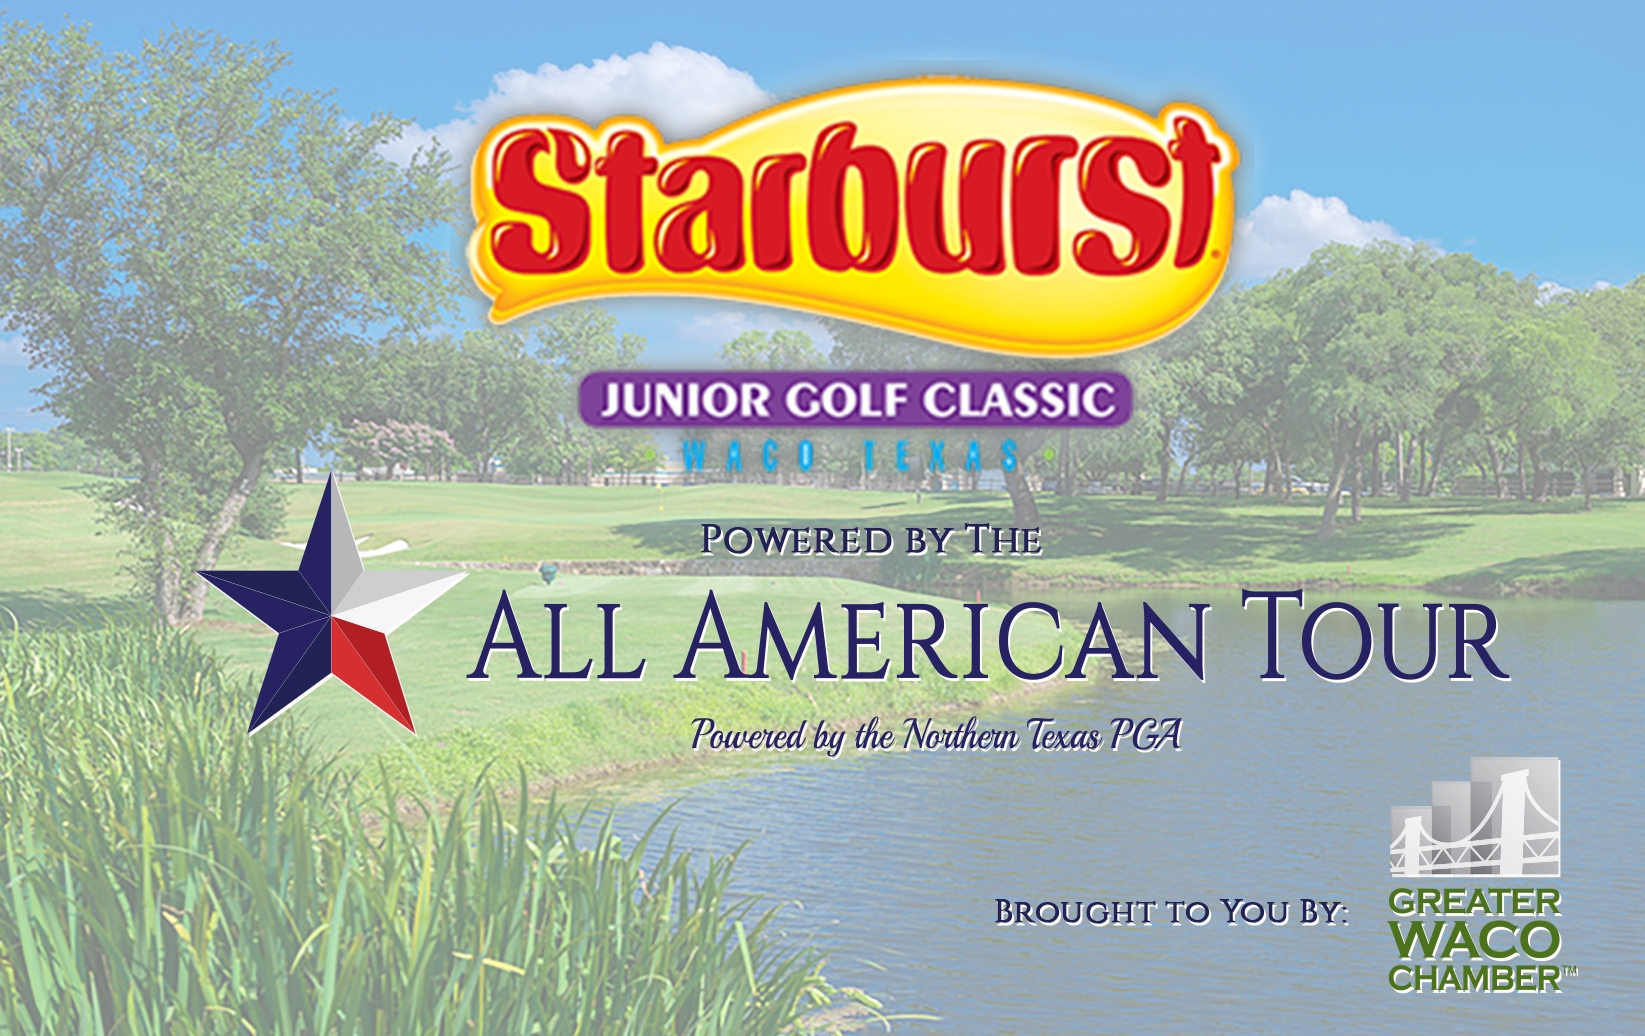 21st Annual Starburst Junior Golf Classic Returns June 17-18